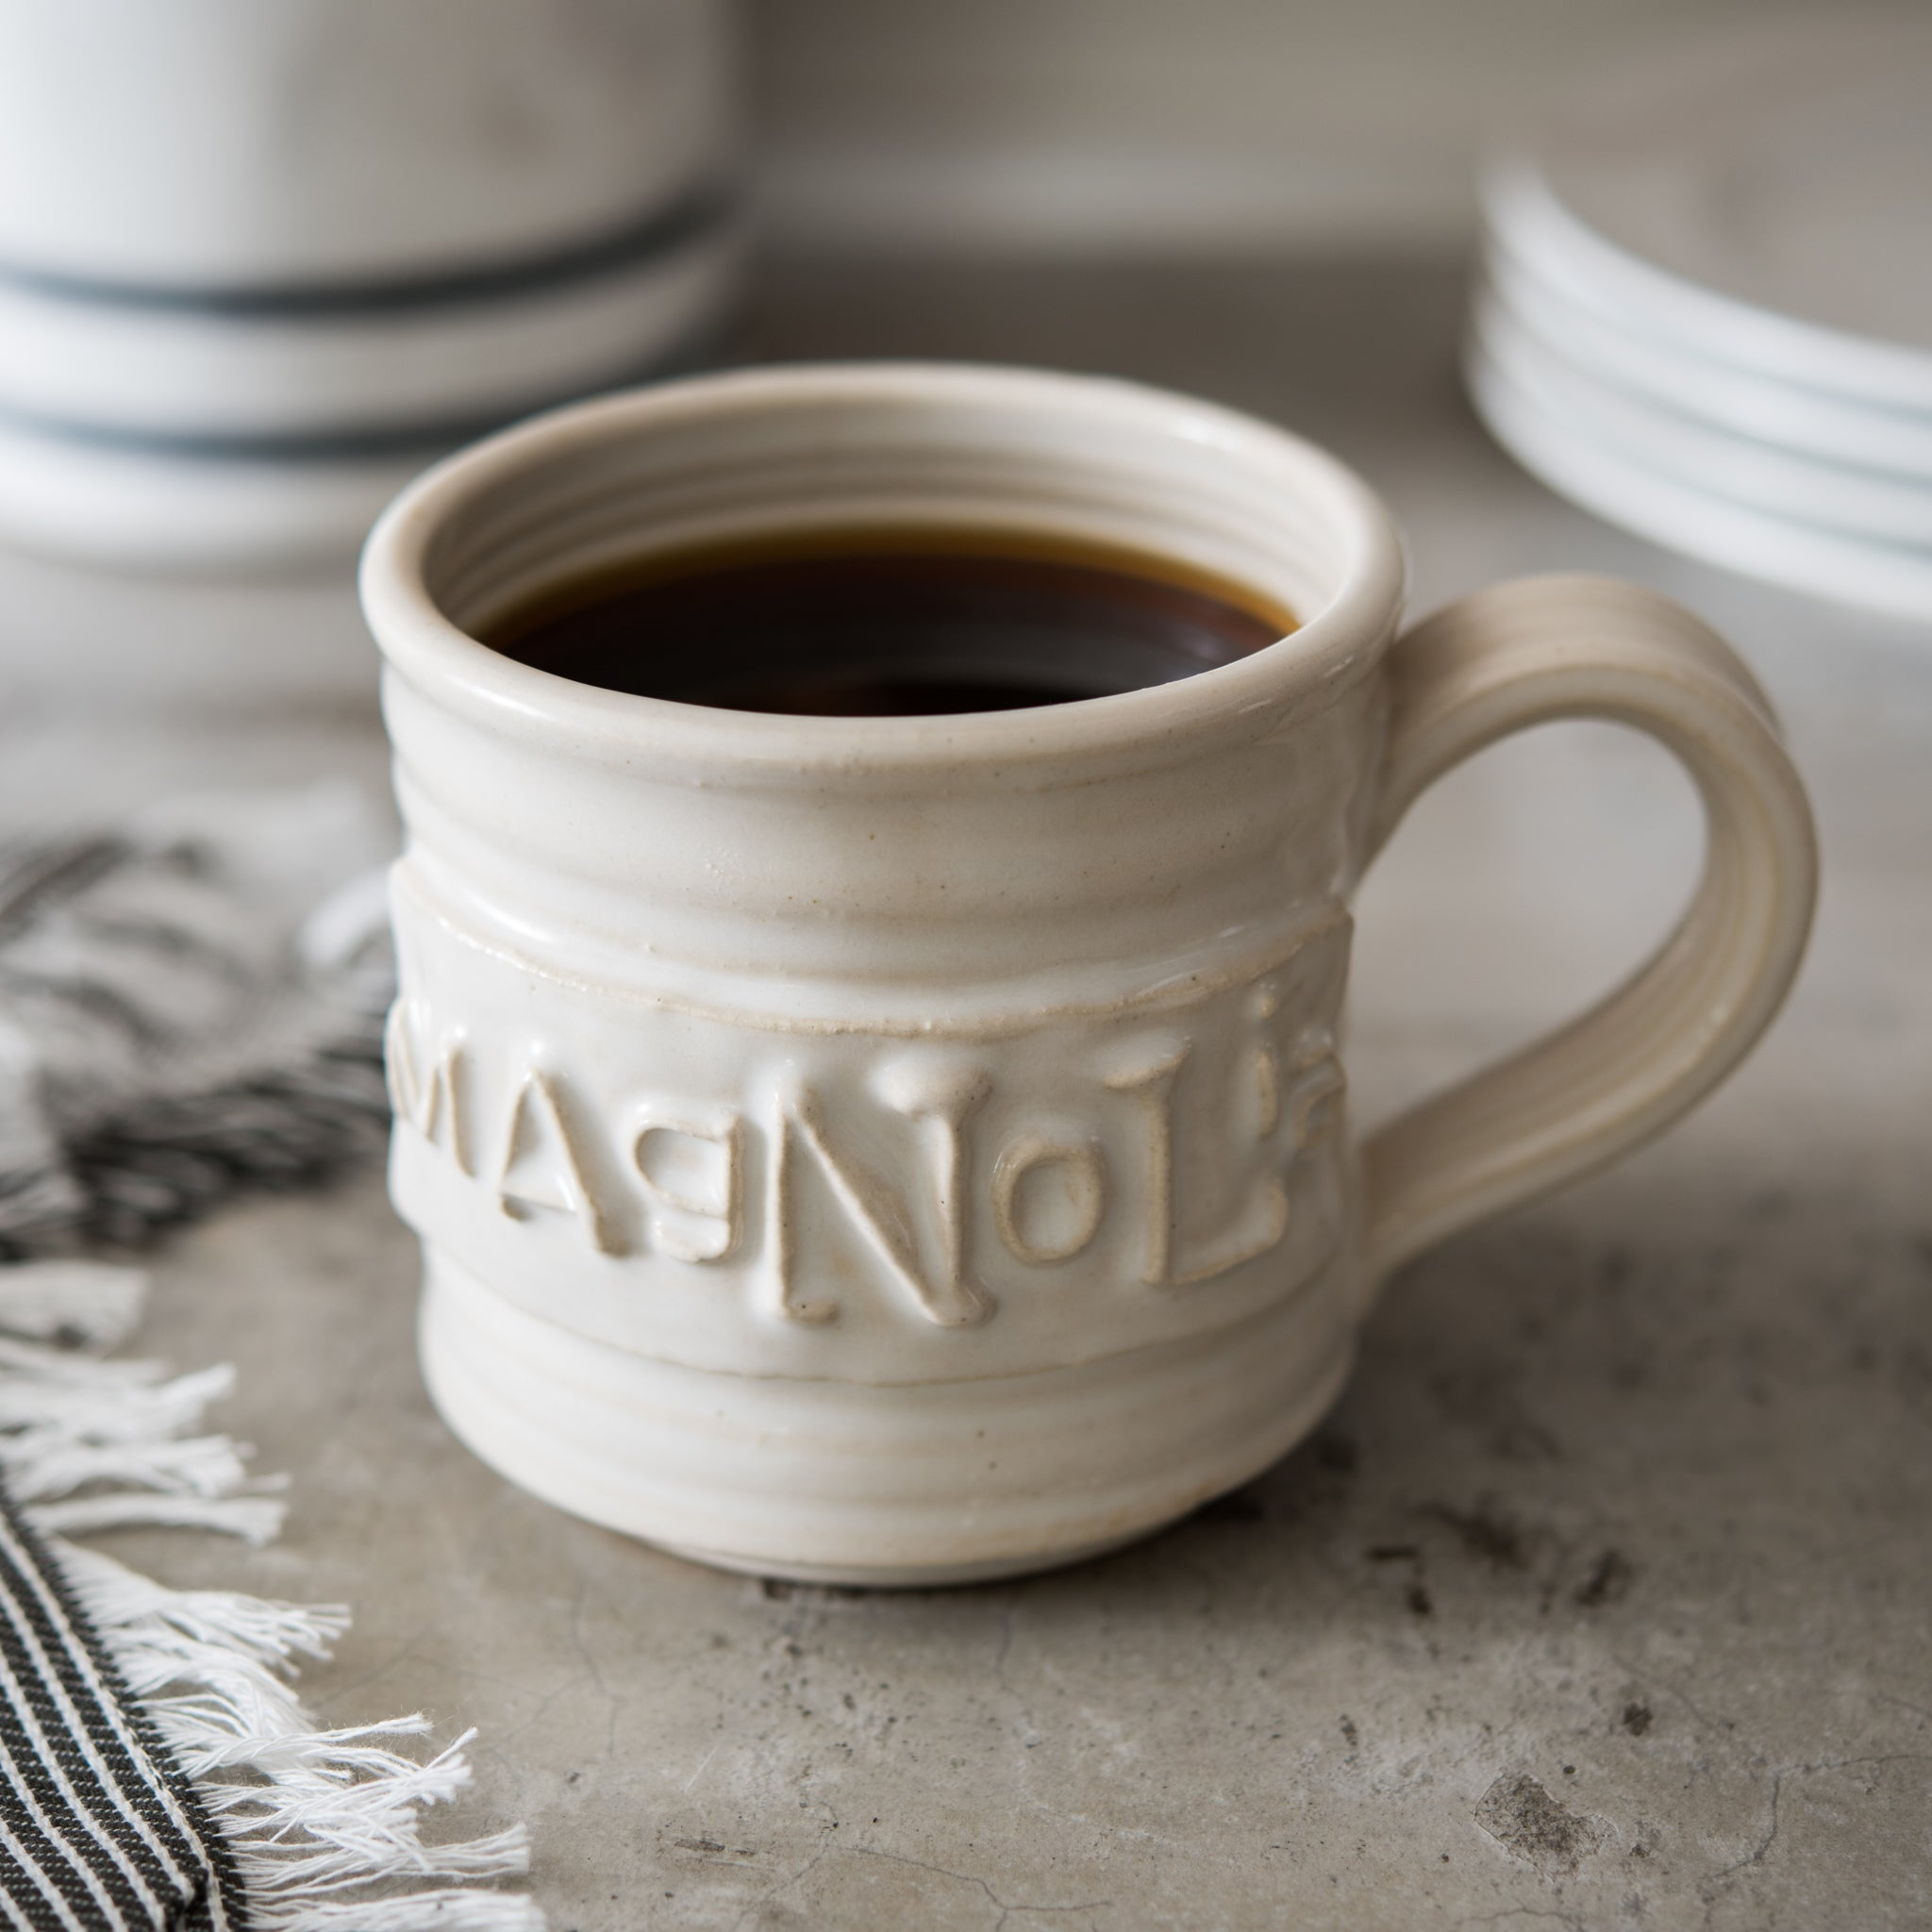 MARIE Coffee Mug Cup featuring the name in actual sign photos